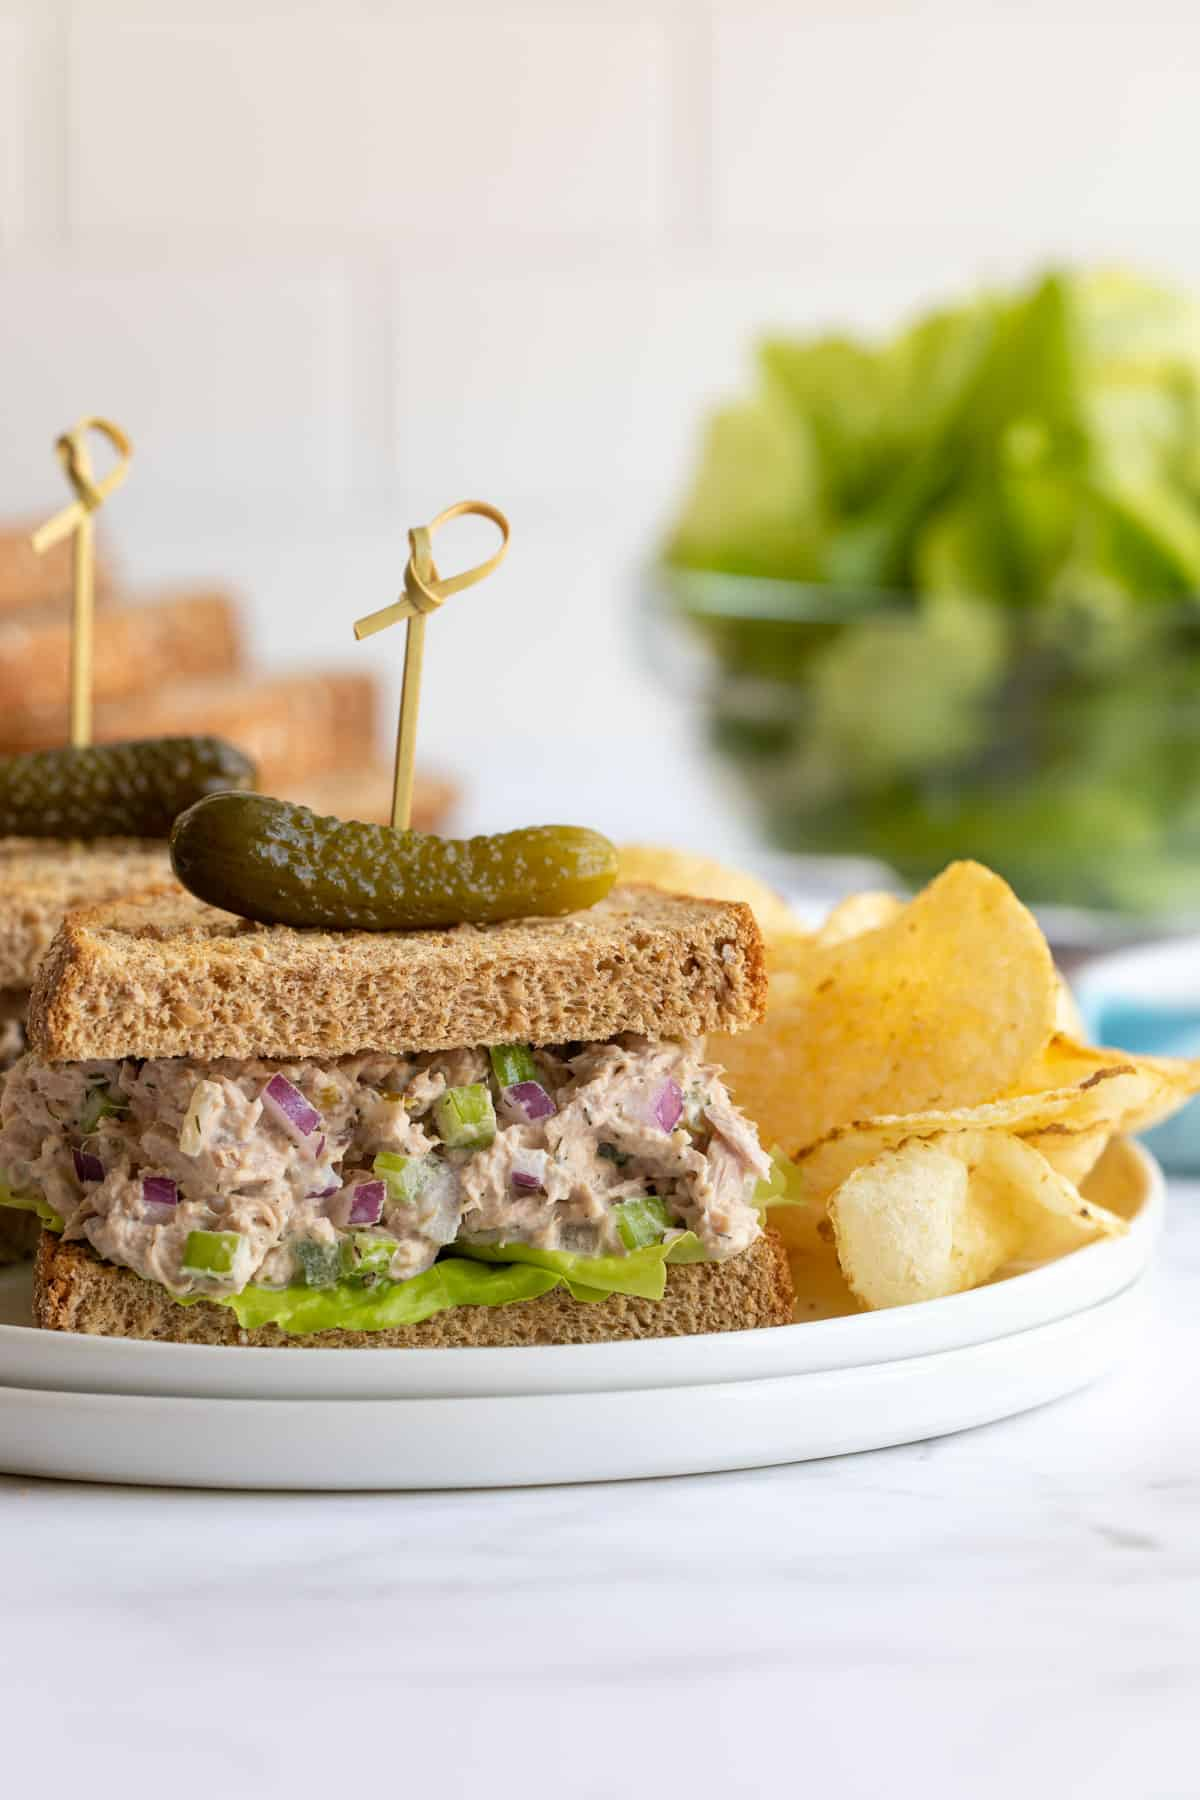 Front view of a classic tuna salad sandwich on a plate with potato chips.